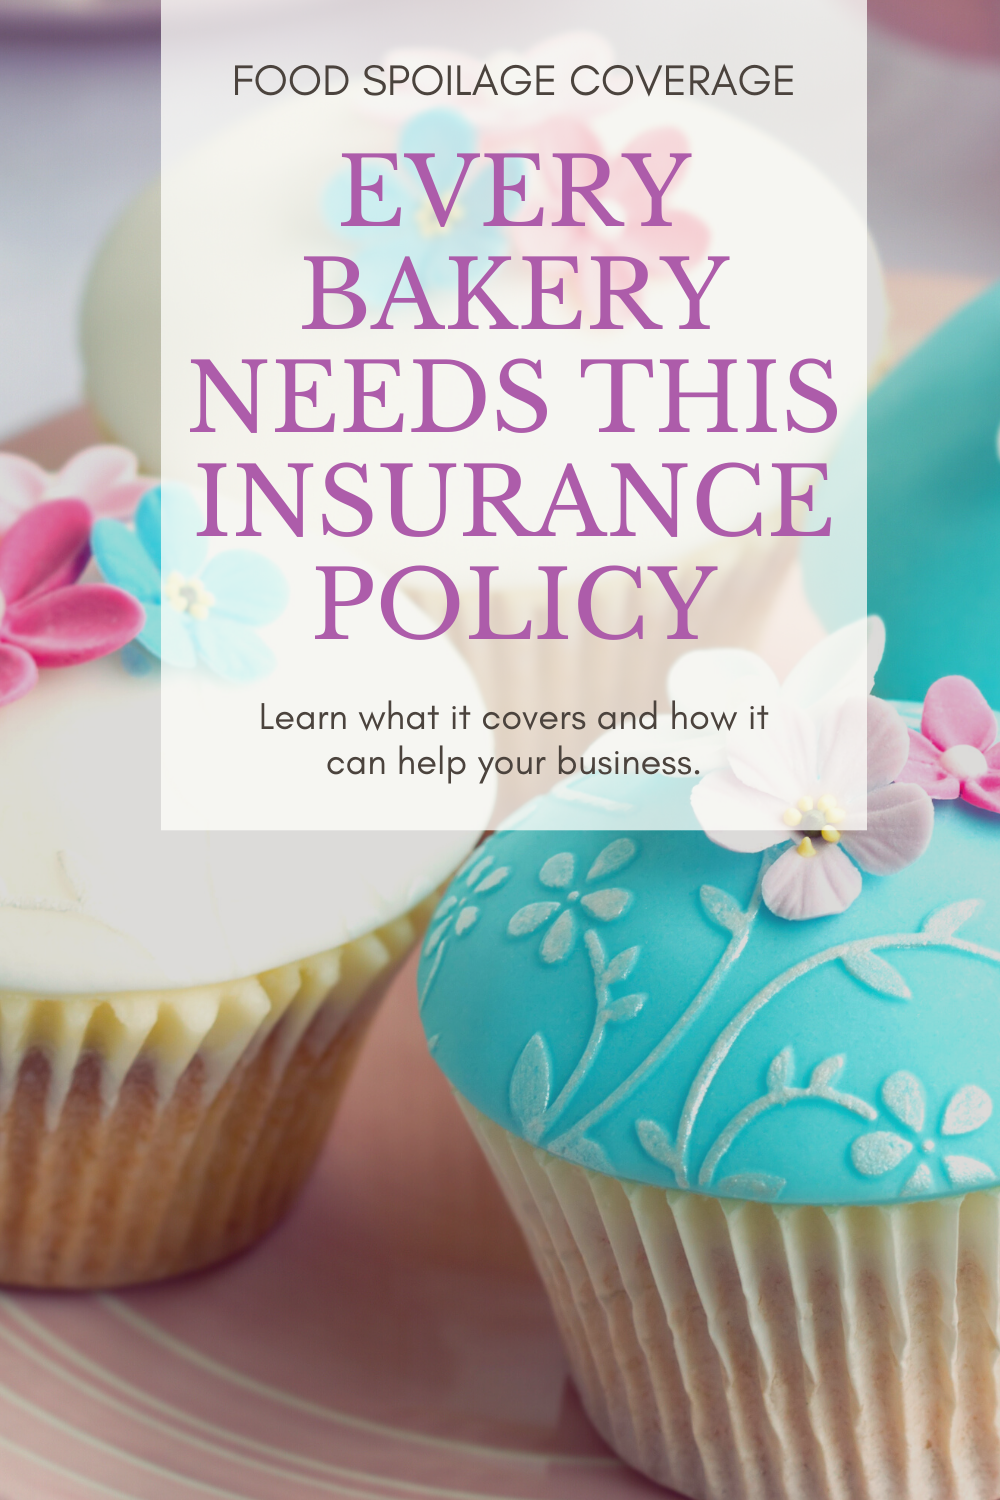 Every Bakery Needs This Insurance Policy In 2020 Bakery Business Insurance Policy Bakery